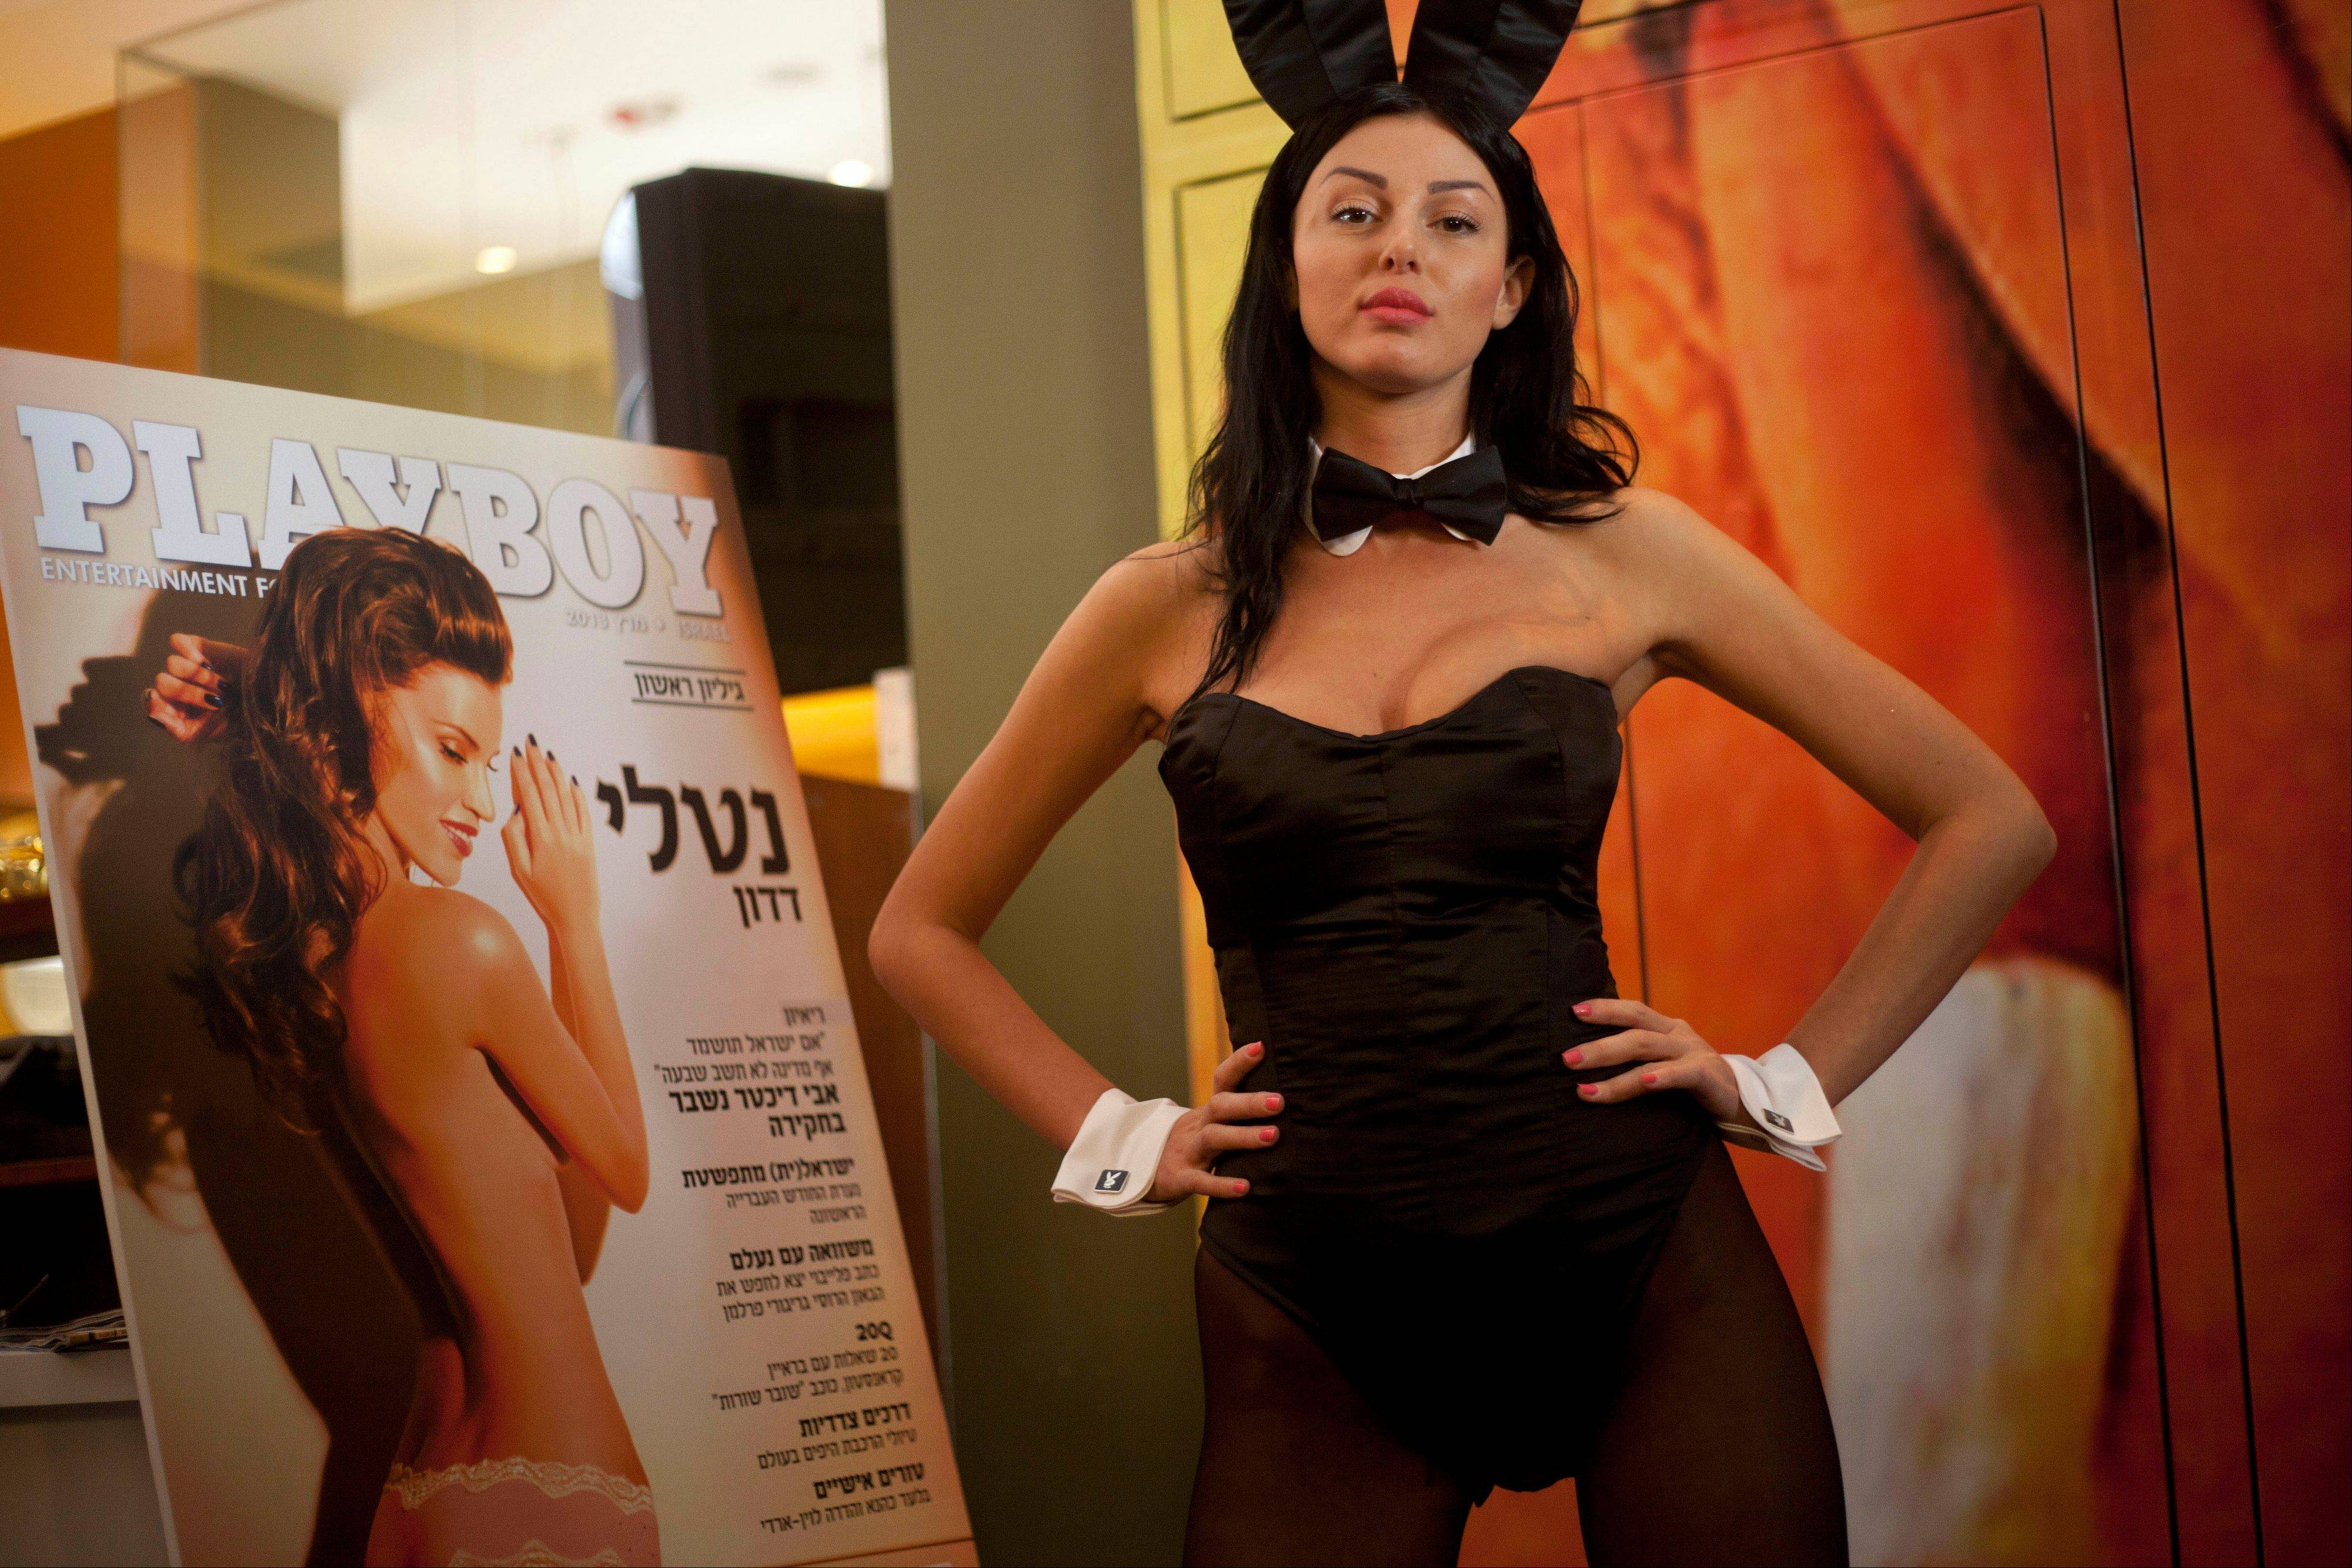 Israelis can now read Playboy �for the articles.� A U.S. �migr�, Daniel Pomerantz, on Tuesday launched the first Hebrew language edition of the popular men�s magazine. Playboy has been widely available in Israel for years, but this marks the first local edition of the magazine featuring Israeli models and articles by Israeli writers.